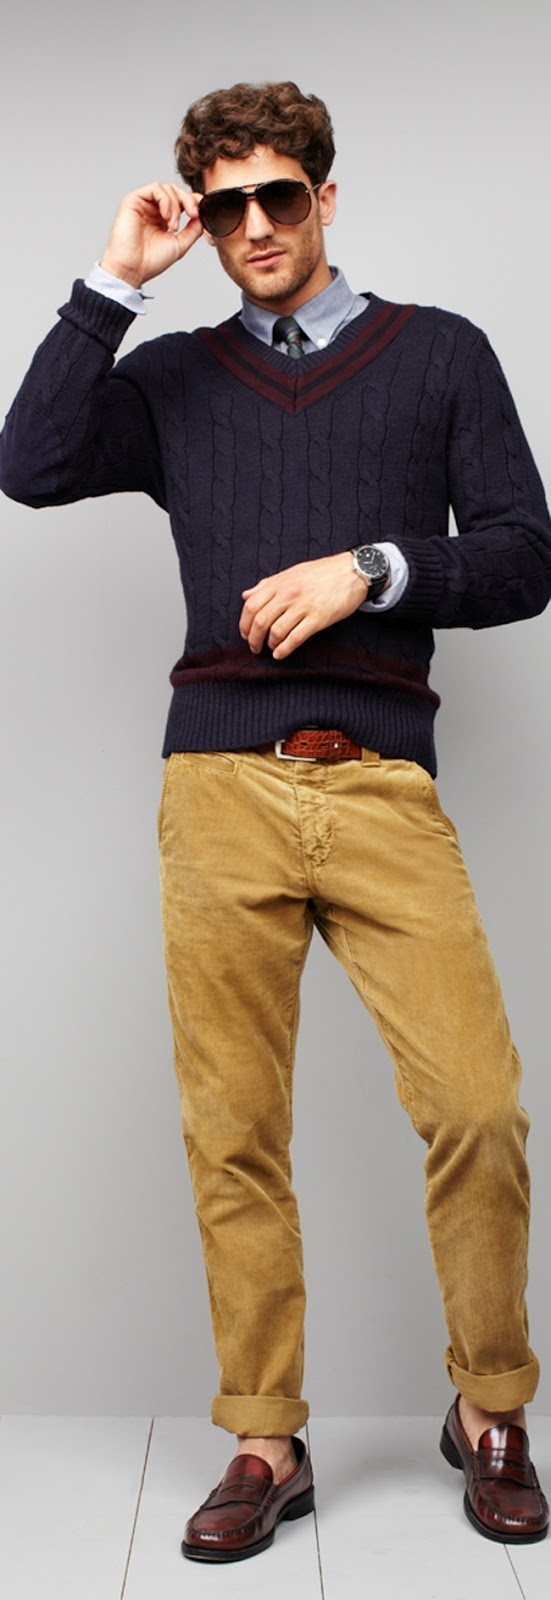 Outfit by Tommy Hilfiger Fall 2012.